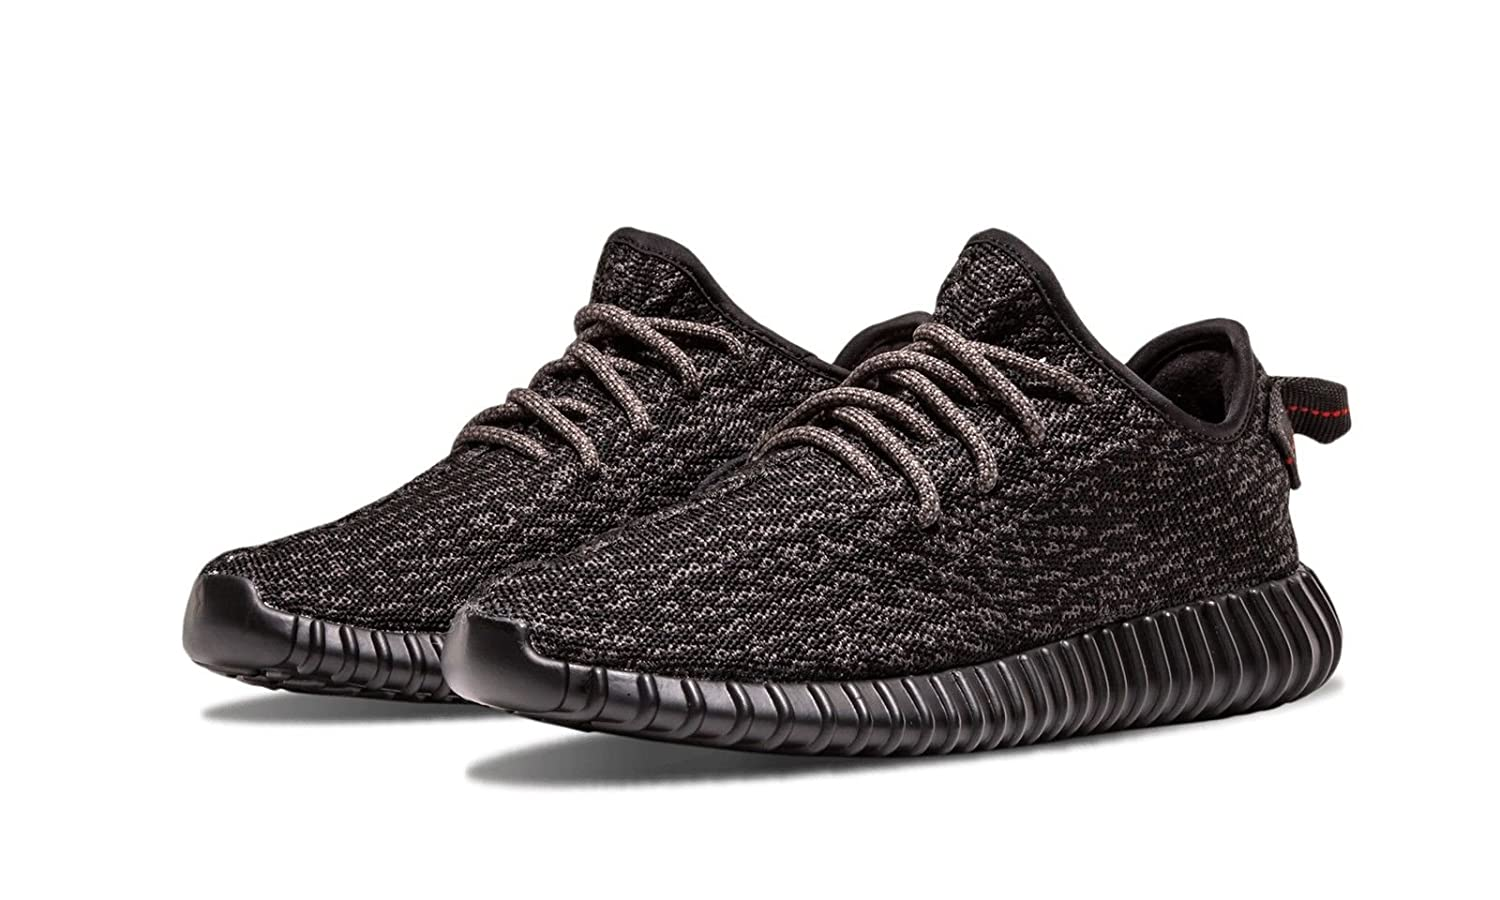 12802d346 Adidas Yeezy Boost 350 Mens - Last pairs - S A L E (USA 11) (UK 10.5 ...